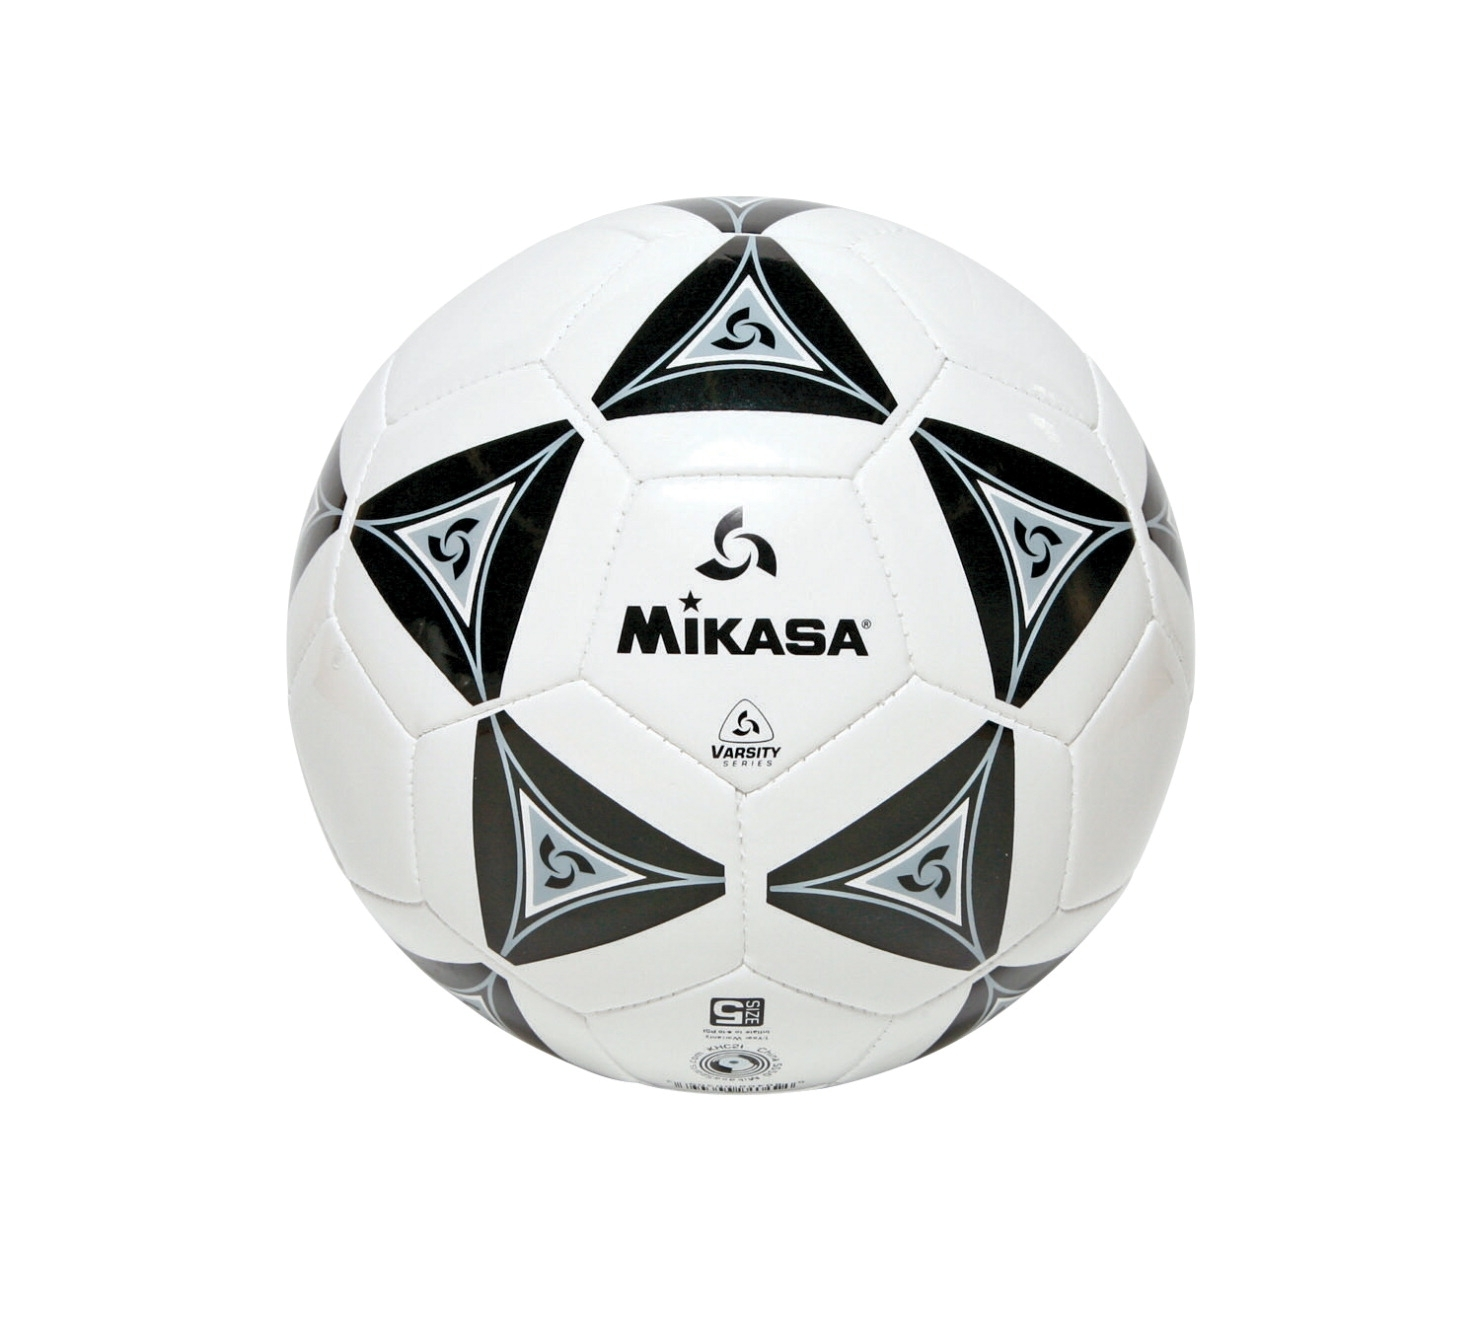 Learning: Science General Science Overhead Transparencies Deluxe Transparencies - 1282629 - Mikasa No 5 Deluxe Cushioned Soccer Ball; Black/white 1282629